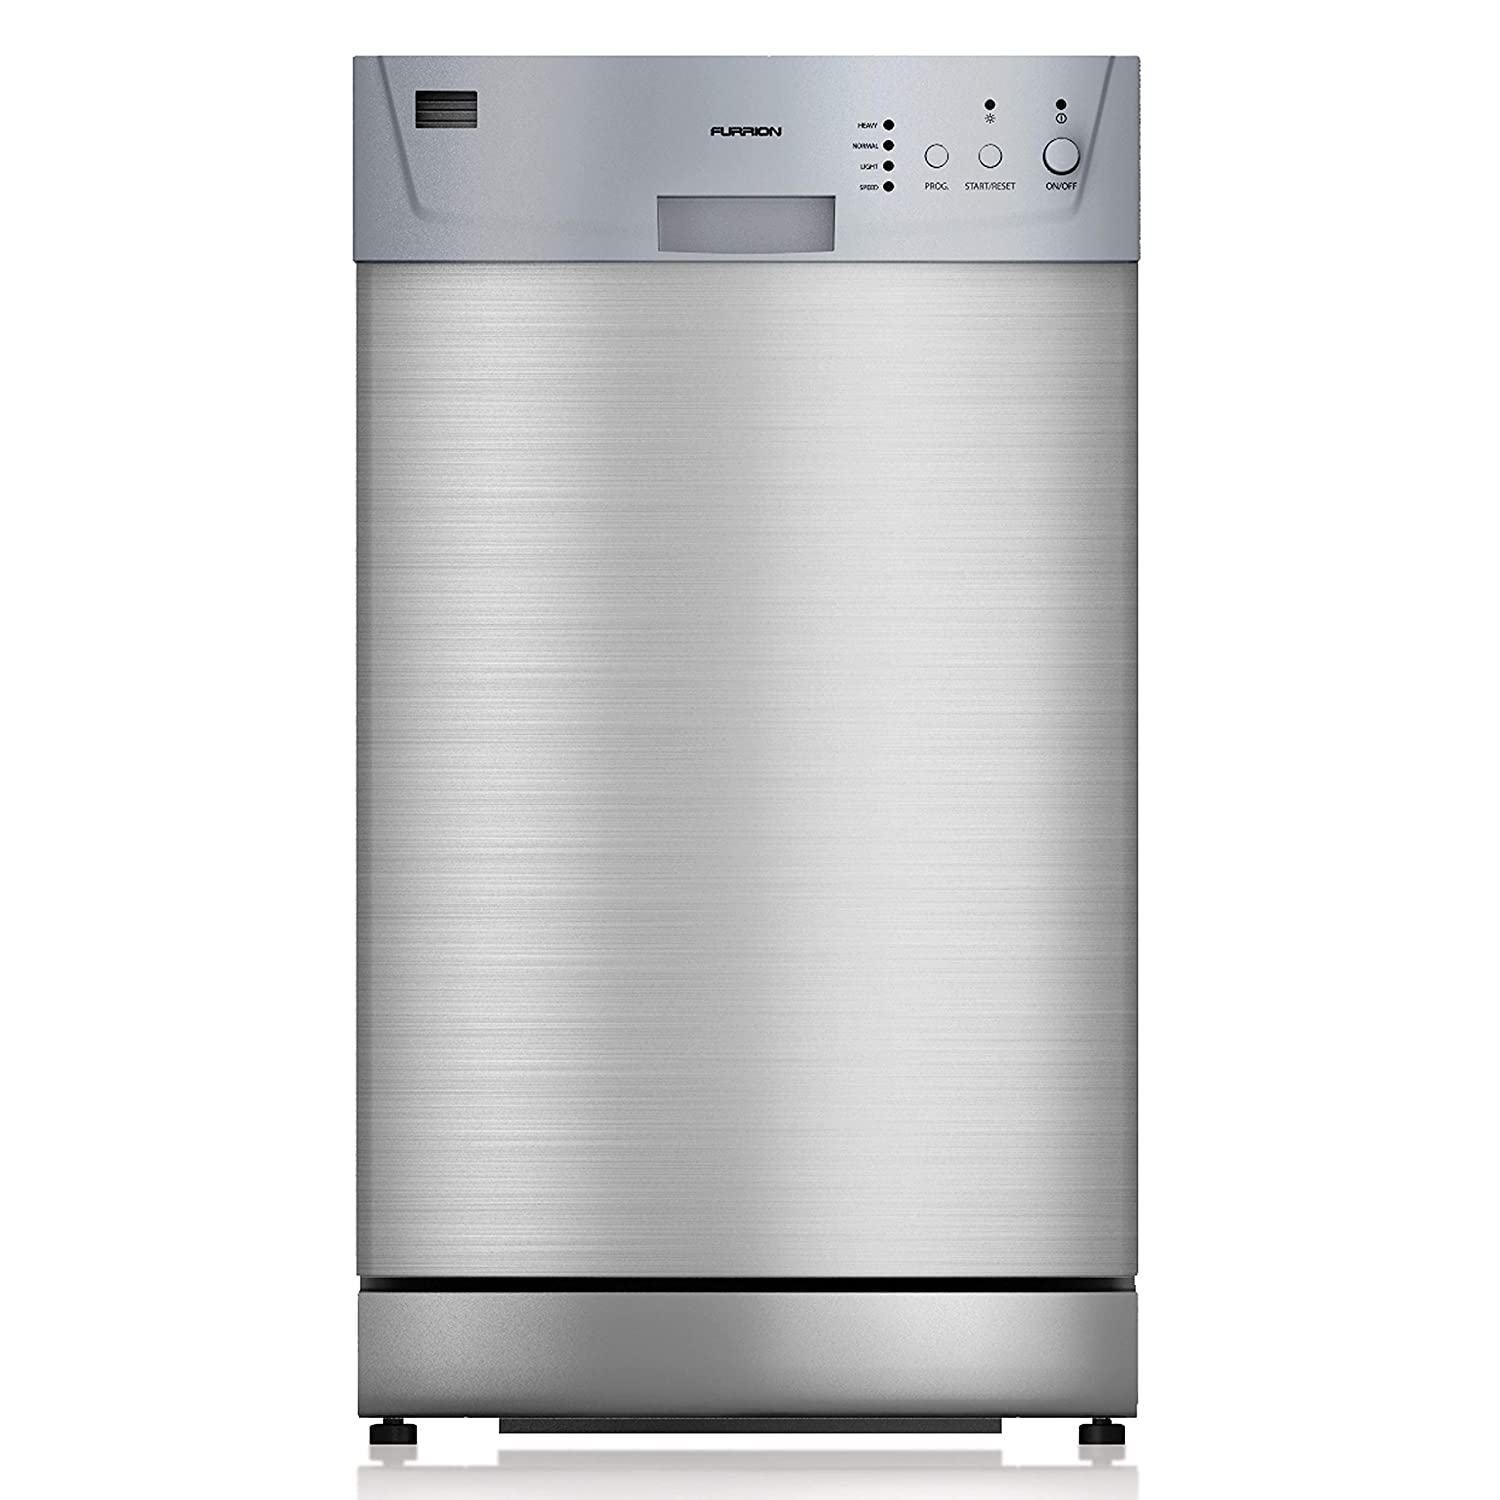 10 BEST Bosch 18 Inch Dishwashers of March 2020 7